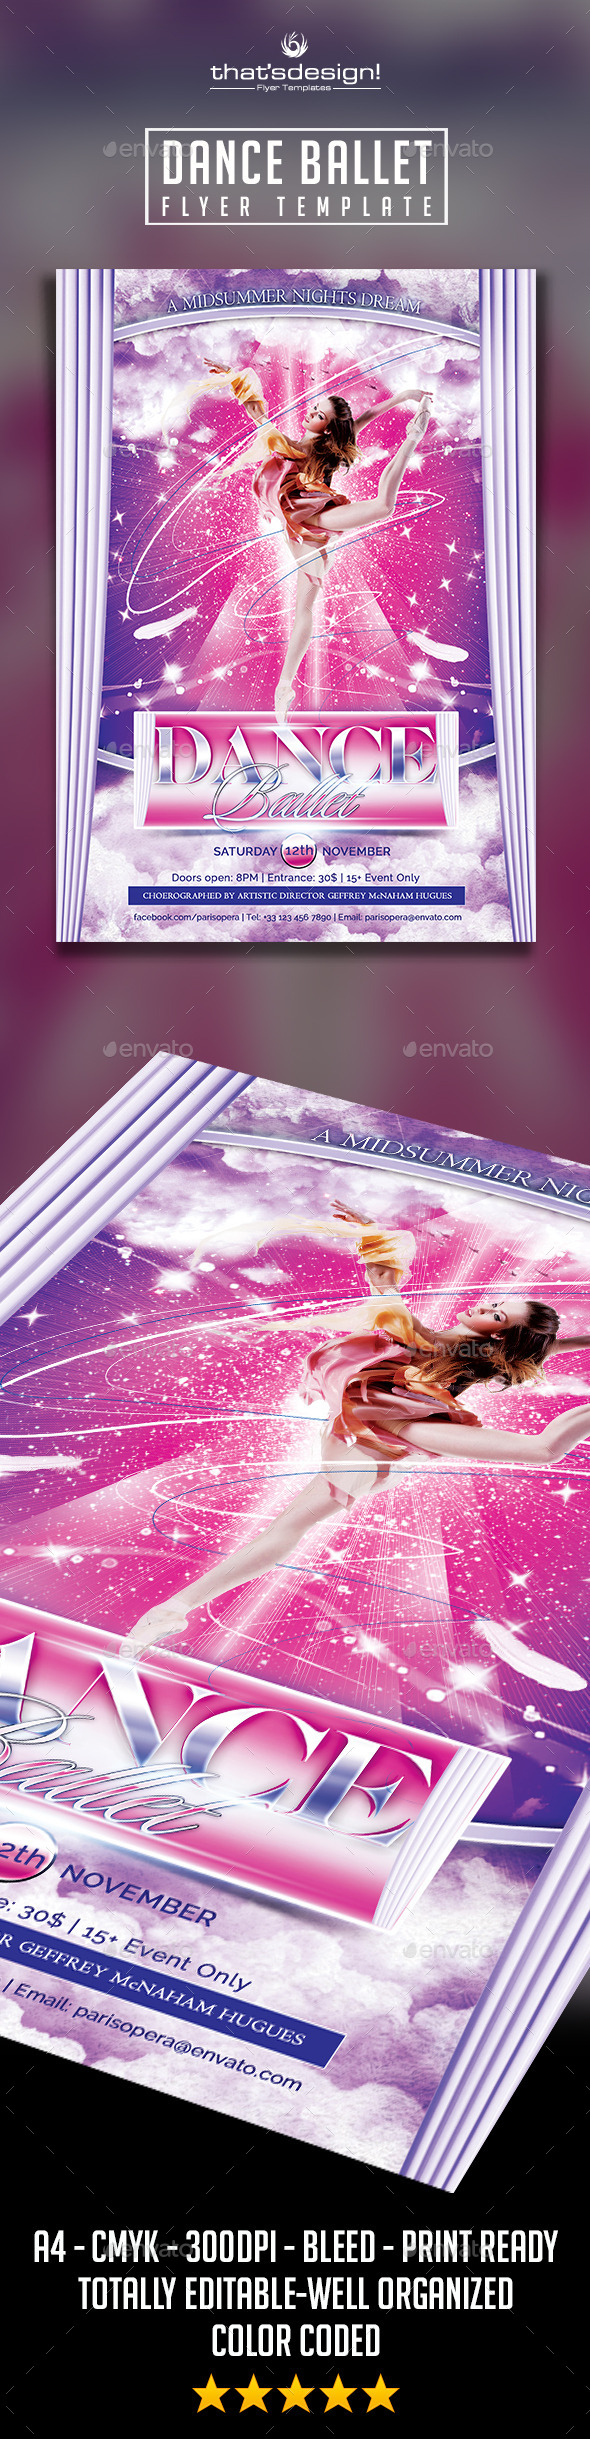 Dance Ballet Flyer - Concerts Events